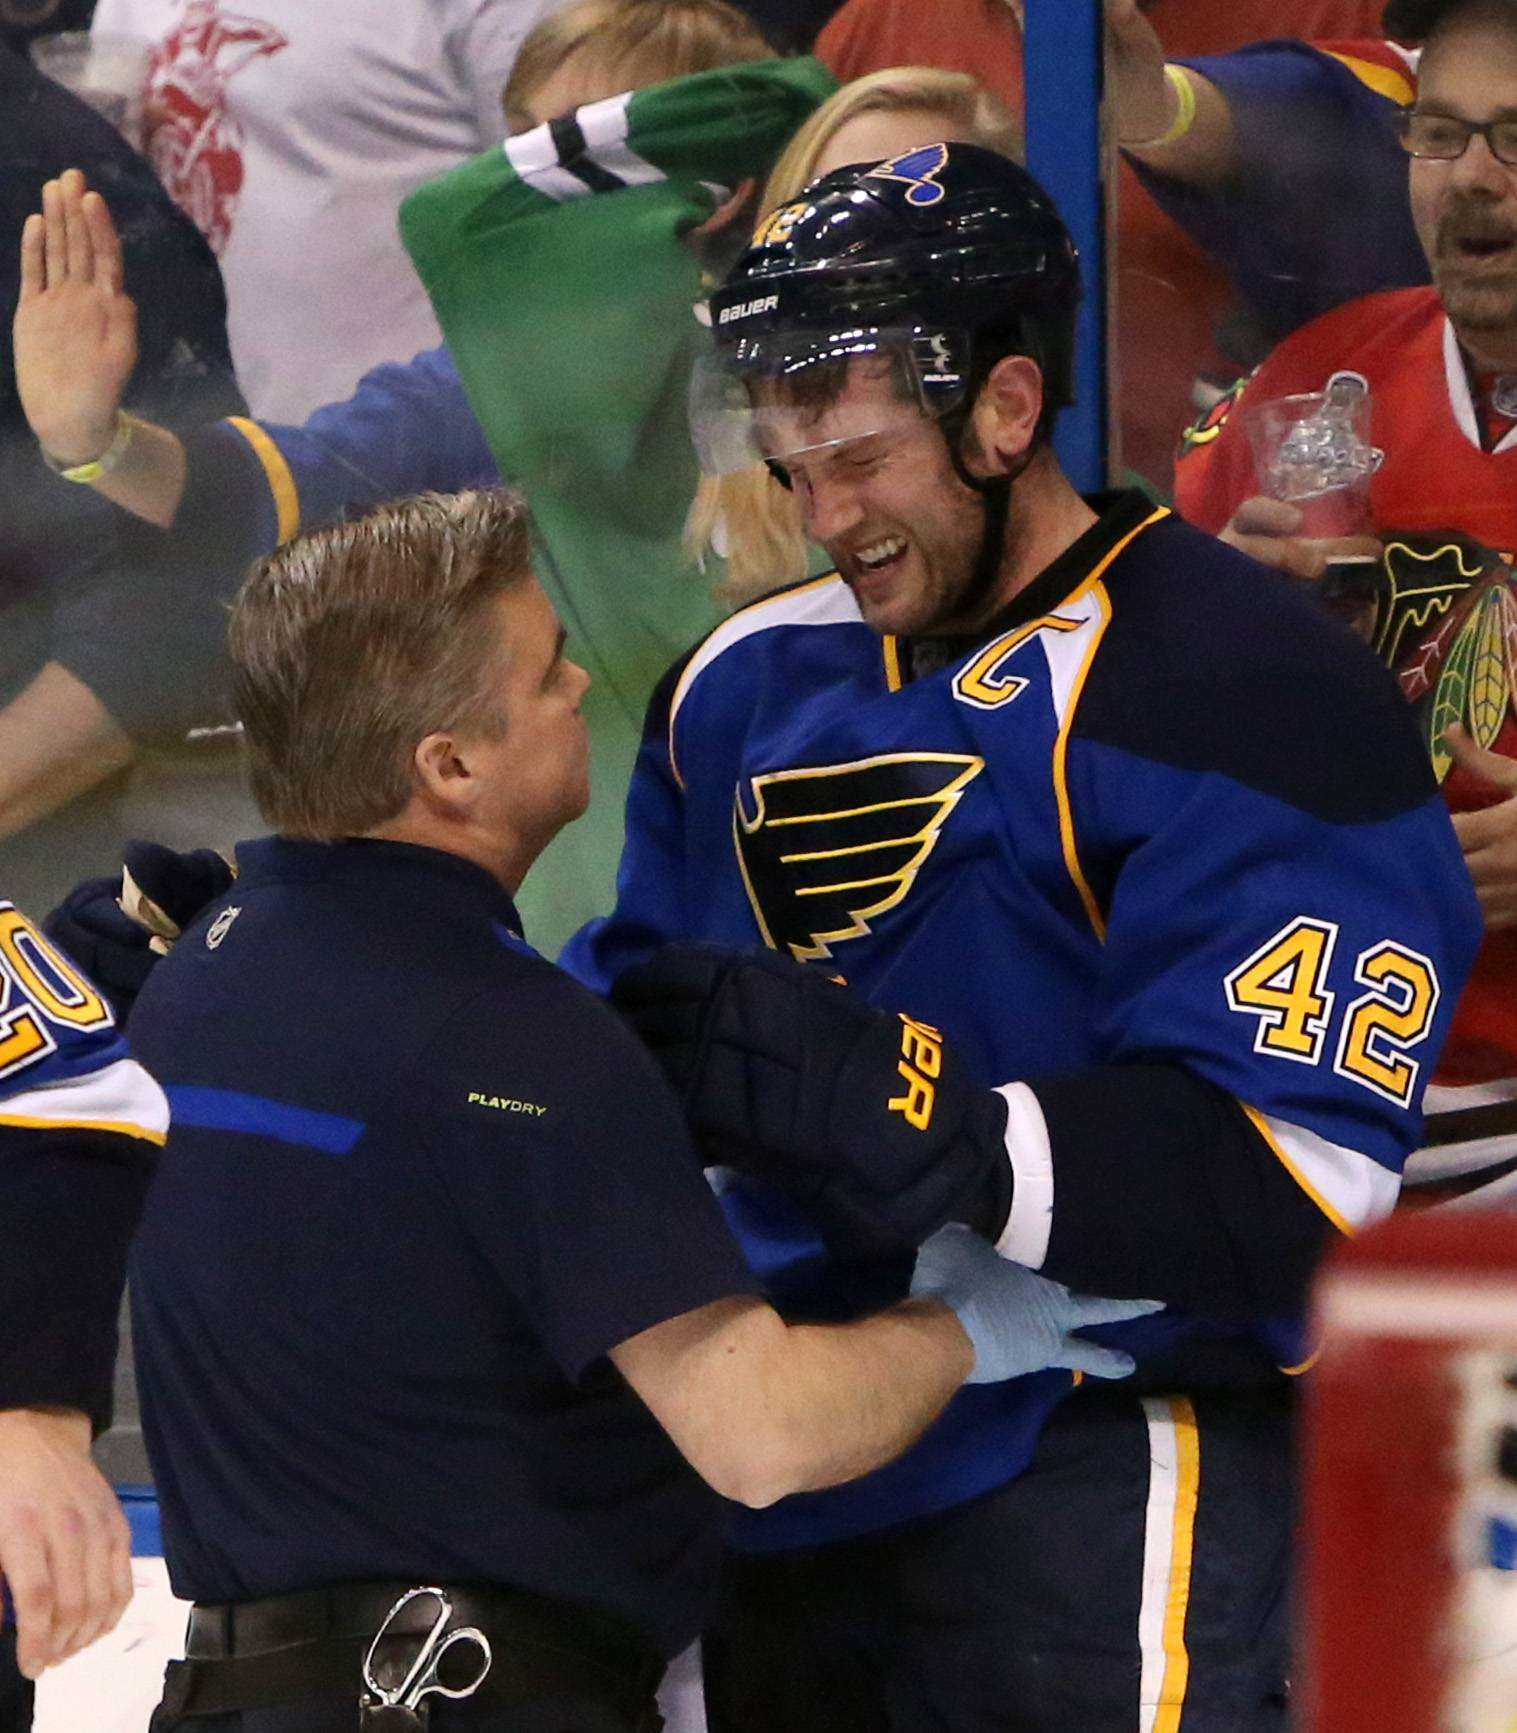 St. Louis Blues center David Backes (42) is tended to by trainer Ray Barile after taking a hit from Chicago Blackhawks defenseman Brent Seabrook in the third period during Game 2 of a first-round NHL hockey playoff series on Saturday, April 19, 2014, in St. Louis. Seabrook was assessed a game misconduct penalty for the play and the Blues scored the tying goal on the ensuing five-minute power play. Backes left the ice under his own power.